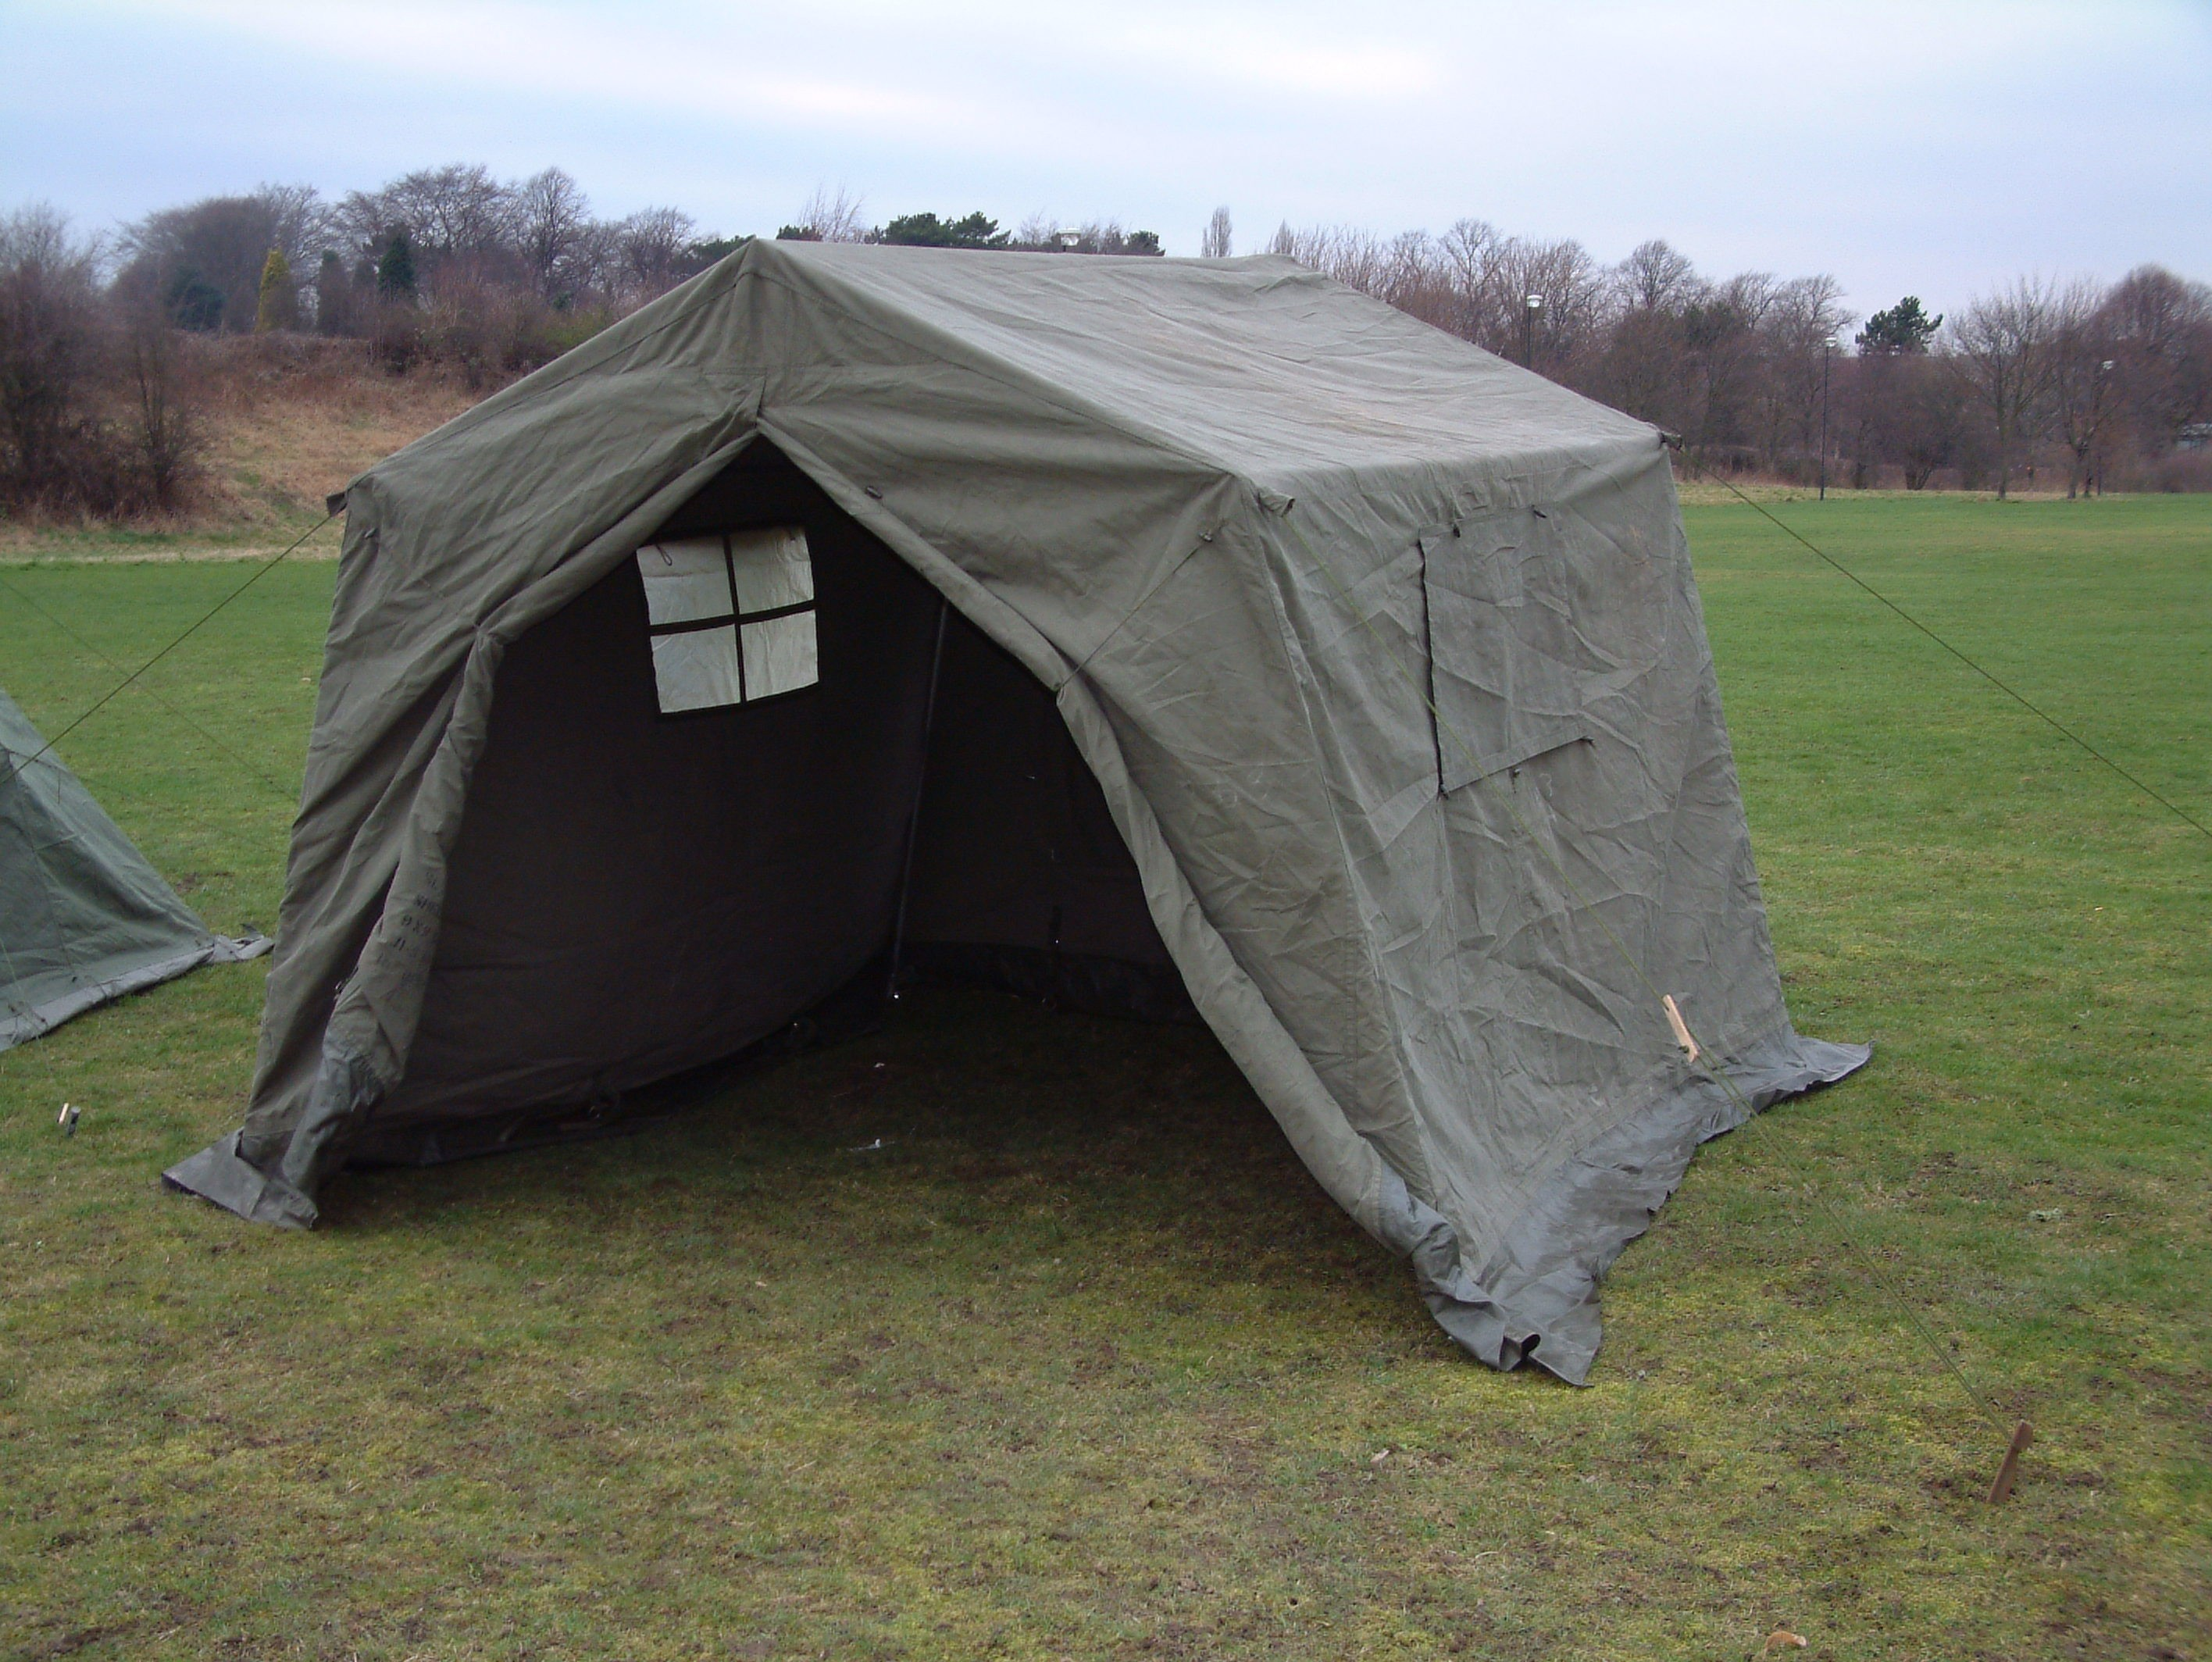 9 x 9 Ex British Army Frame Tent - Unissued : canvas tents uk - memphite.com